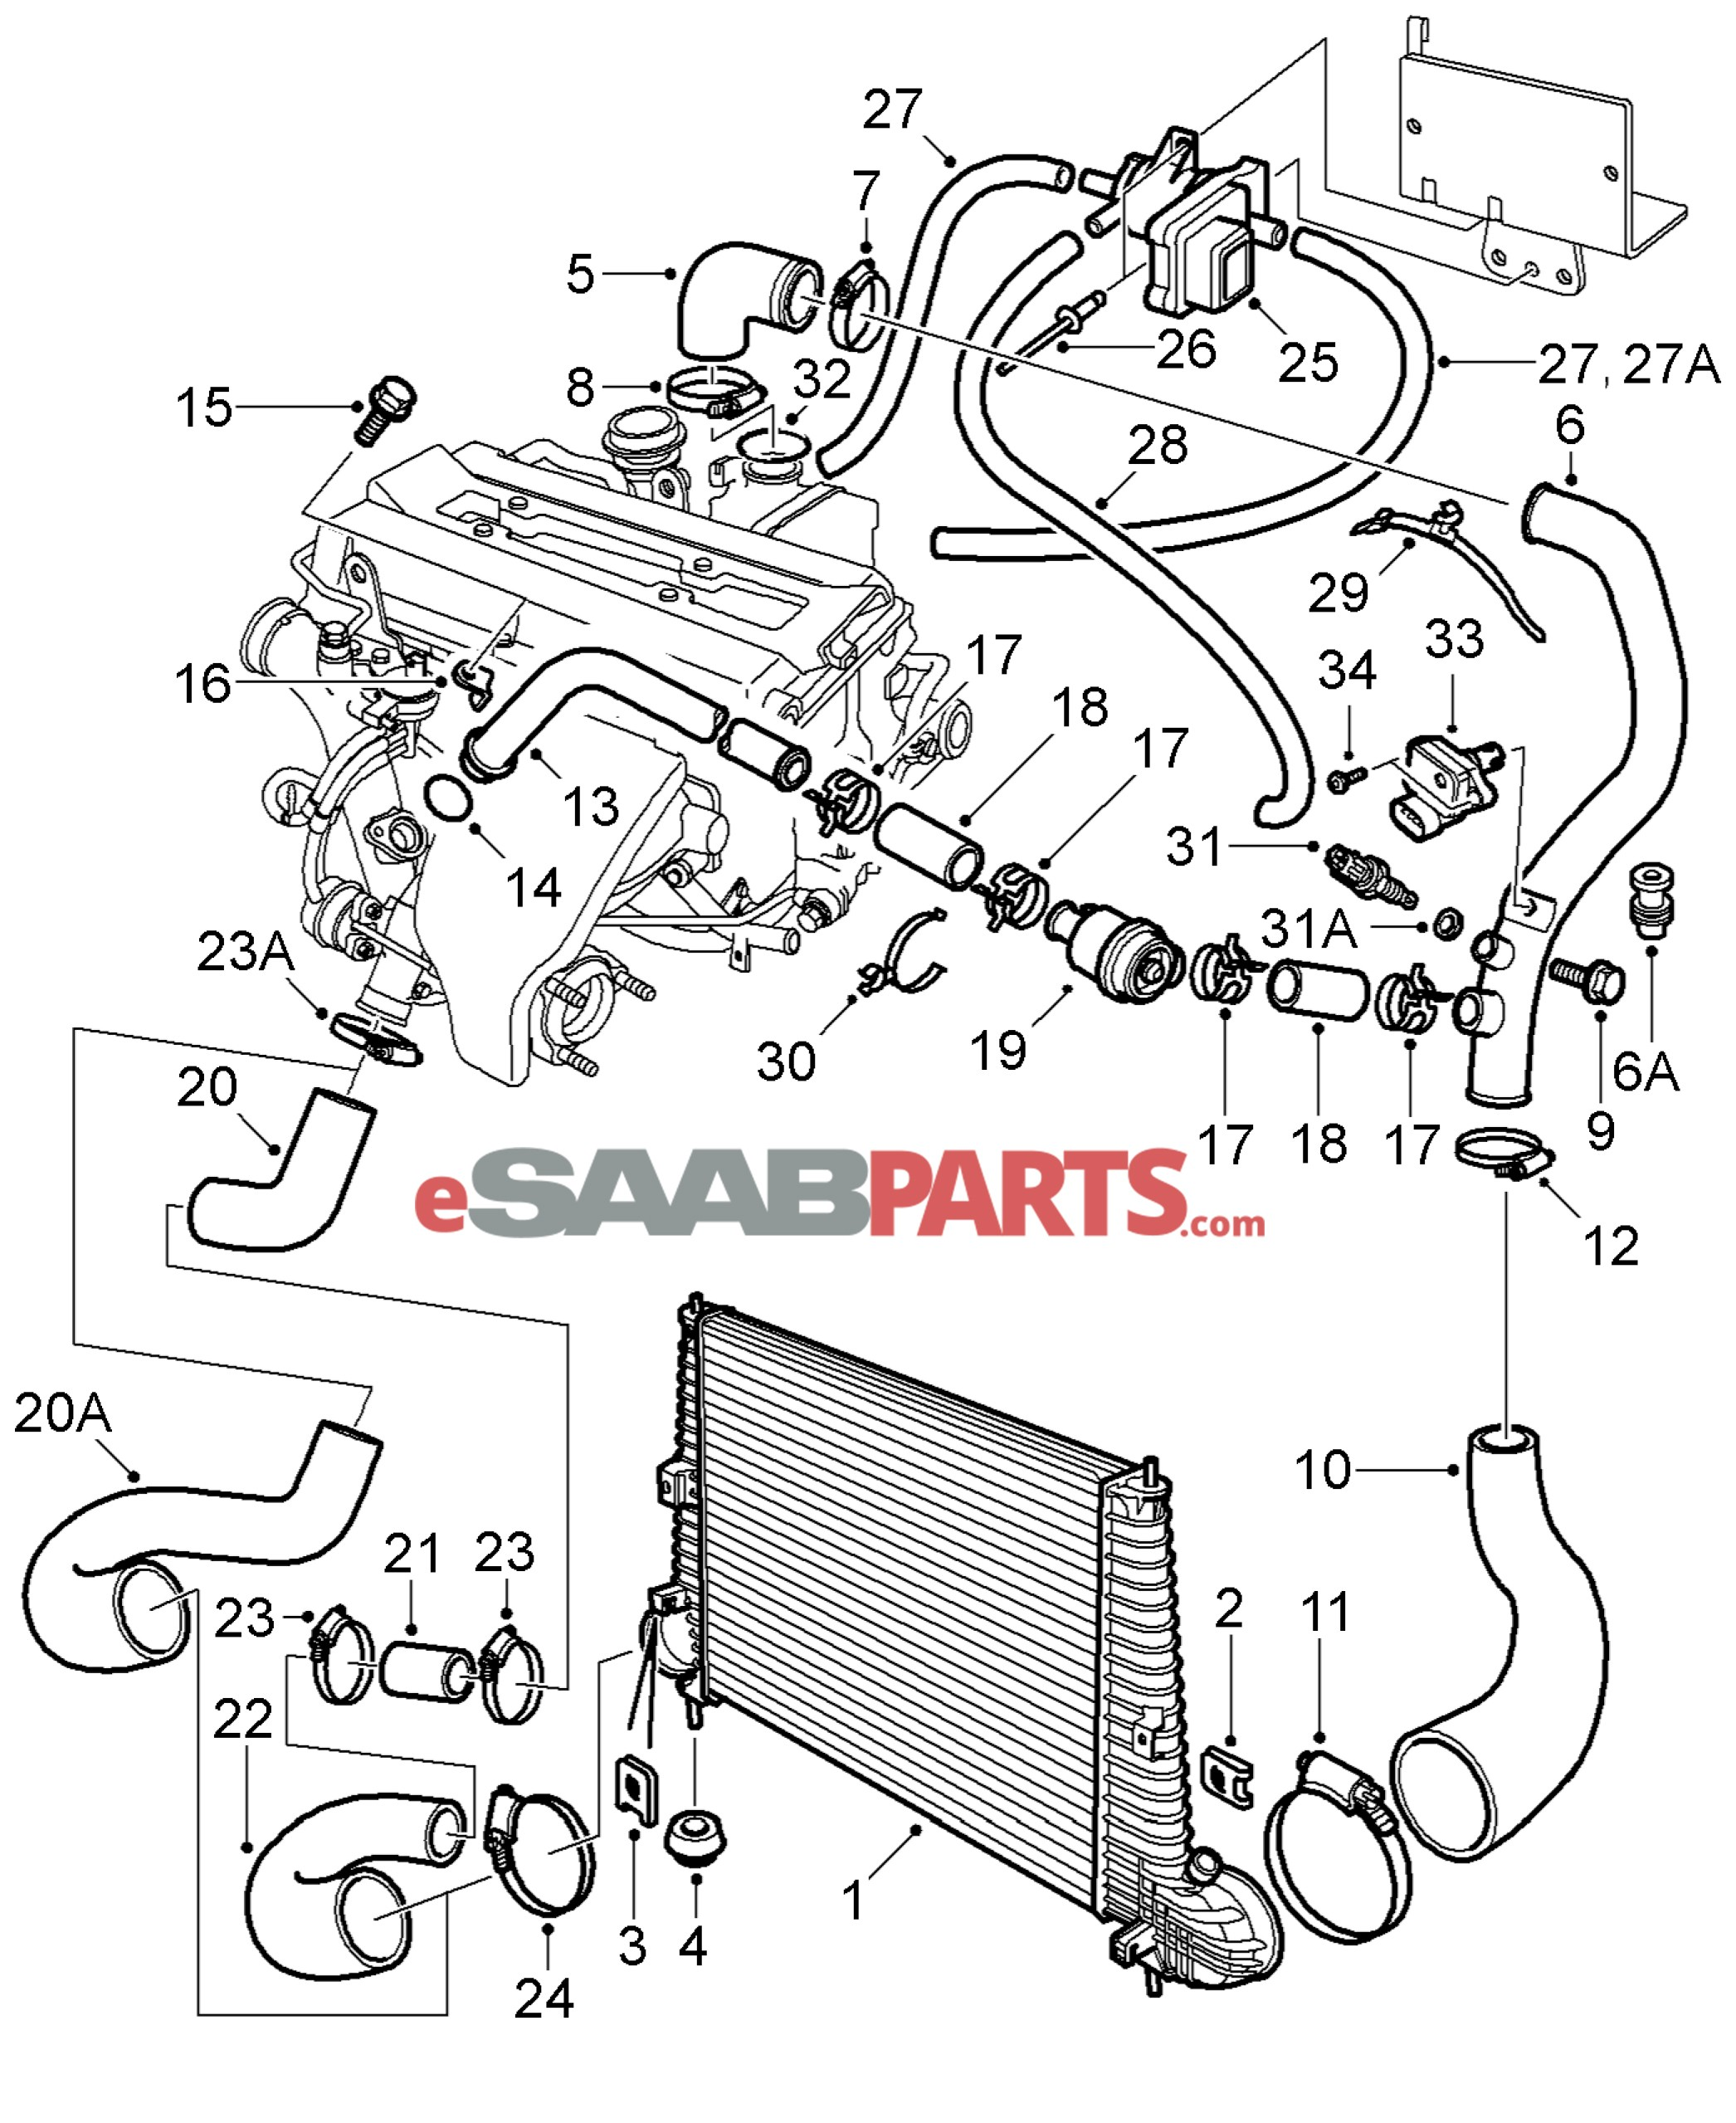 1999 saab engine diagram automotive block diagram u2022 rh carwiringdiagram today 1992 saab 900 transmission 1992 saab 900 transmission